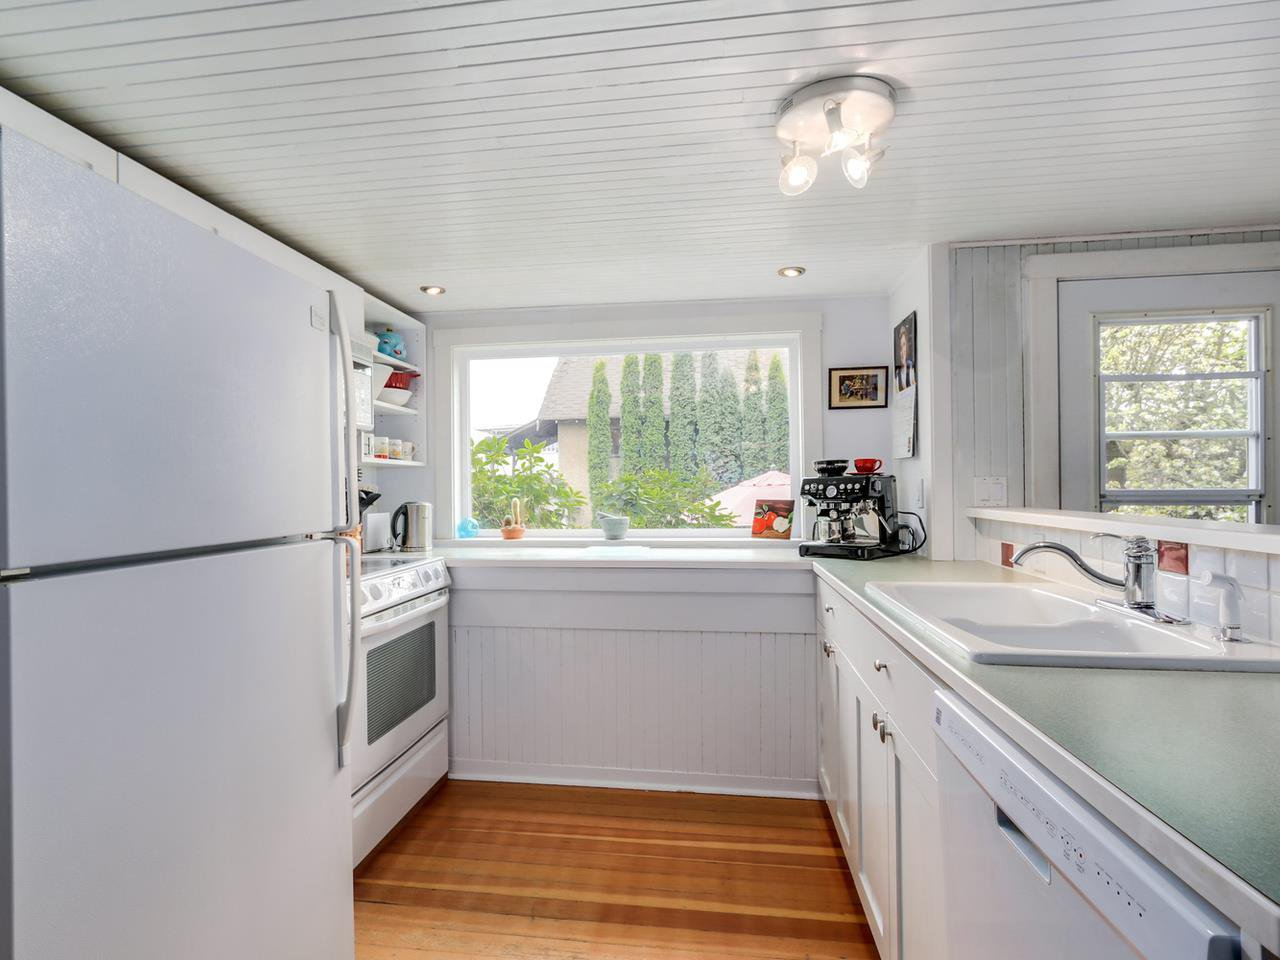 Photo 6: Photos: 1760 E 37TH AVENUE in Vancouver: Victoria VE House for sale (Vancouver East)  : MLS®# R2059026